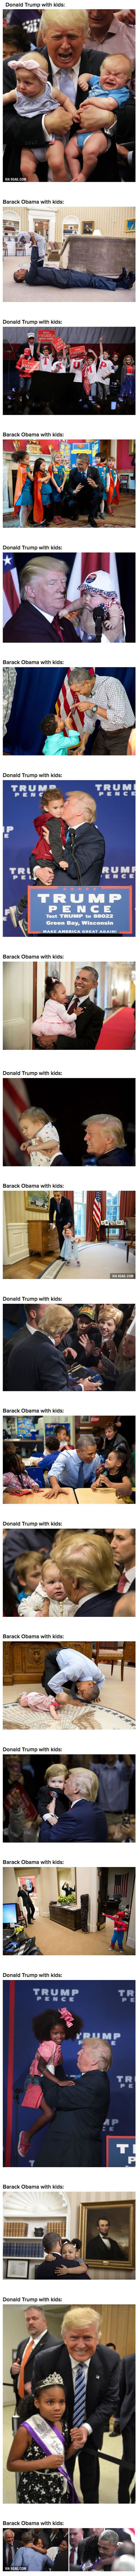 Donald Trump With Kids Vs. Barack Obama With Kids